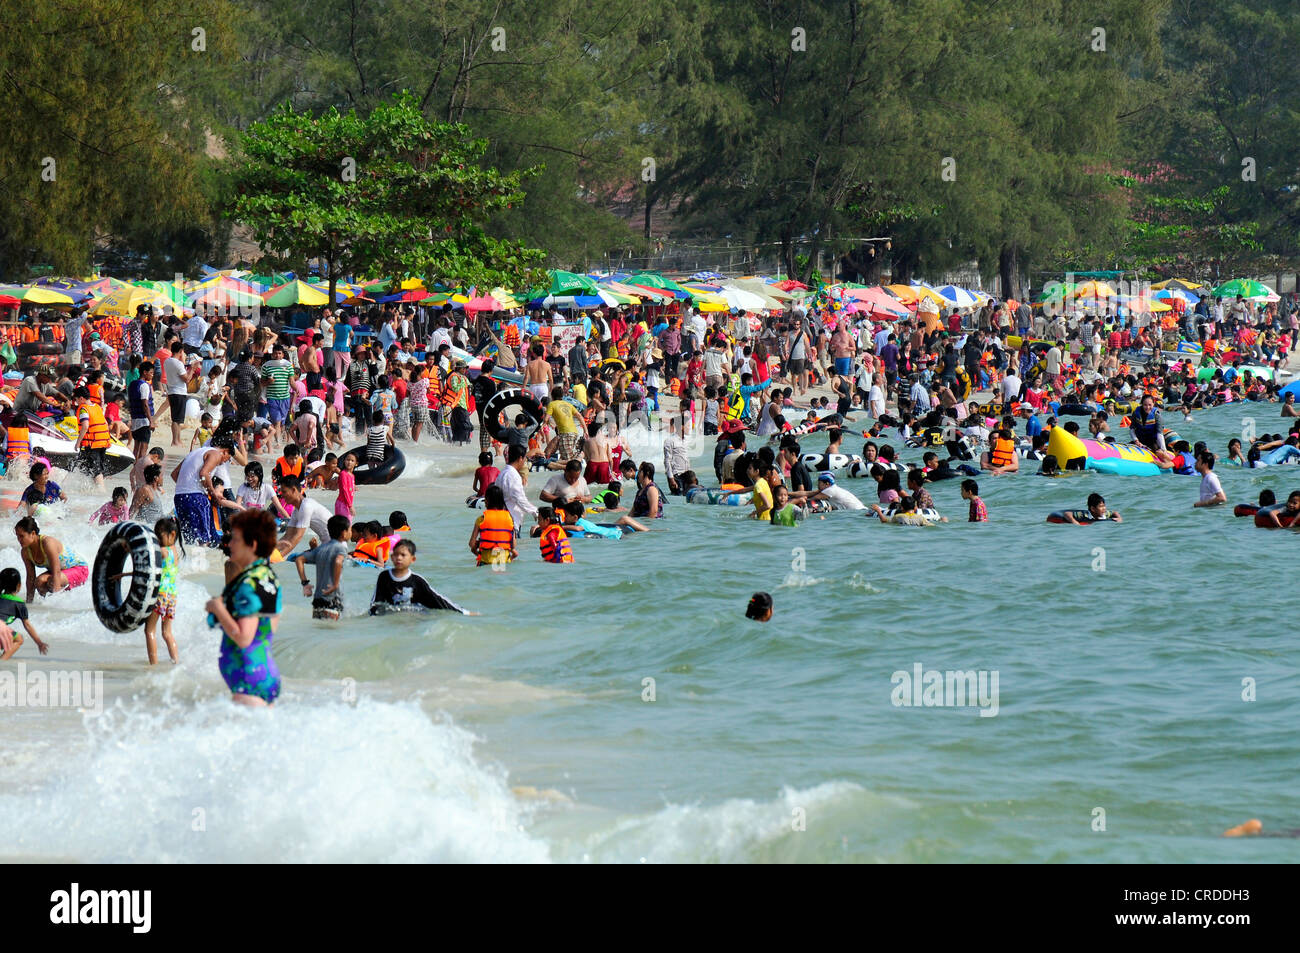 Crowds on the main beach, Ochheuteal Beach in Sihanoukville, Cambodia, Southeast Asia, Asia - Stock Image